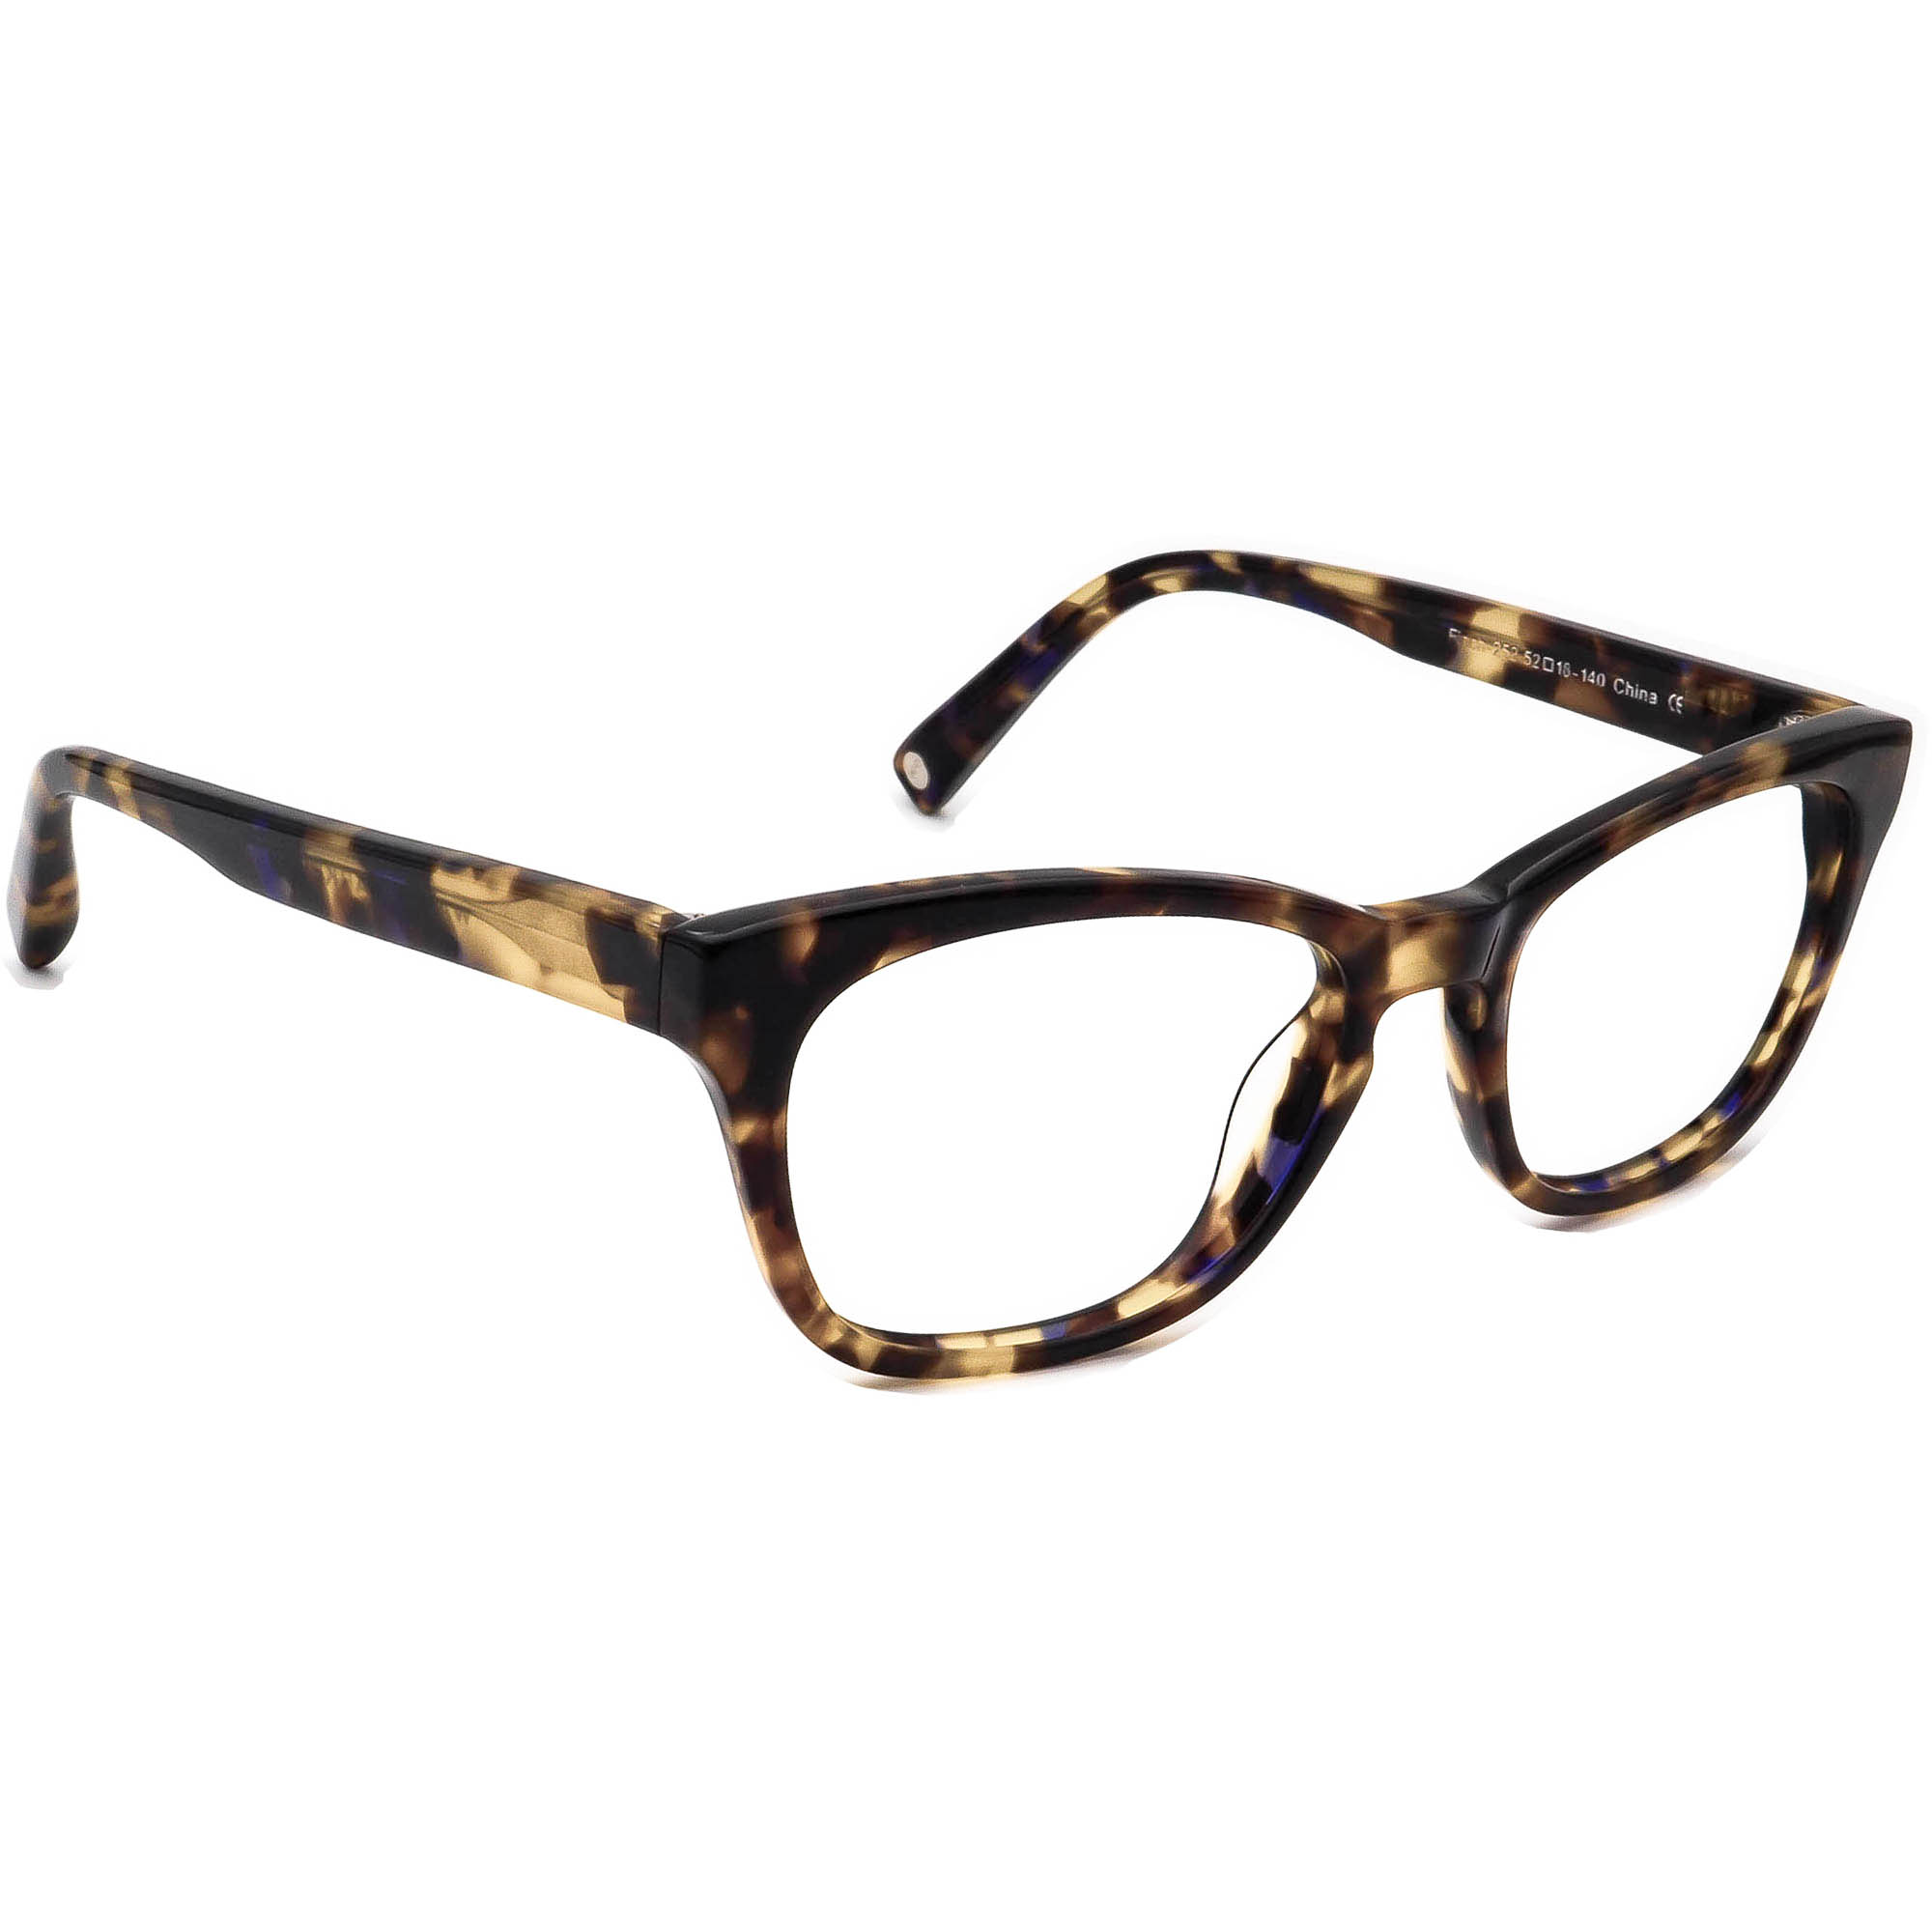 Warby Parker Finch-252 Eyeglasses